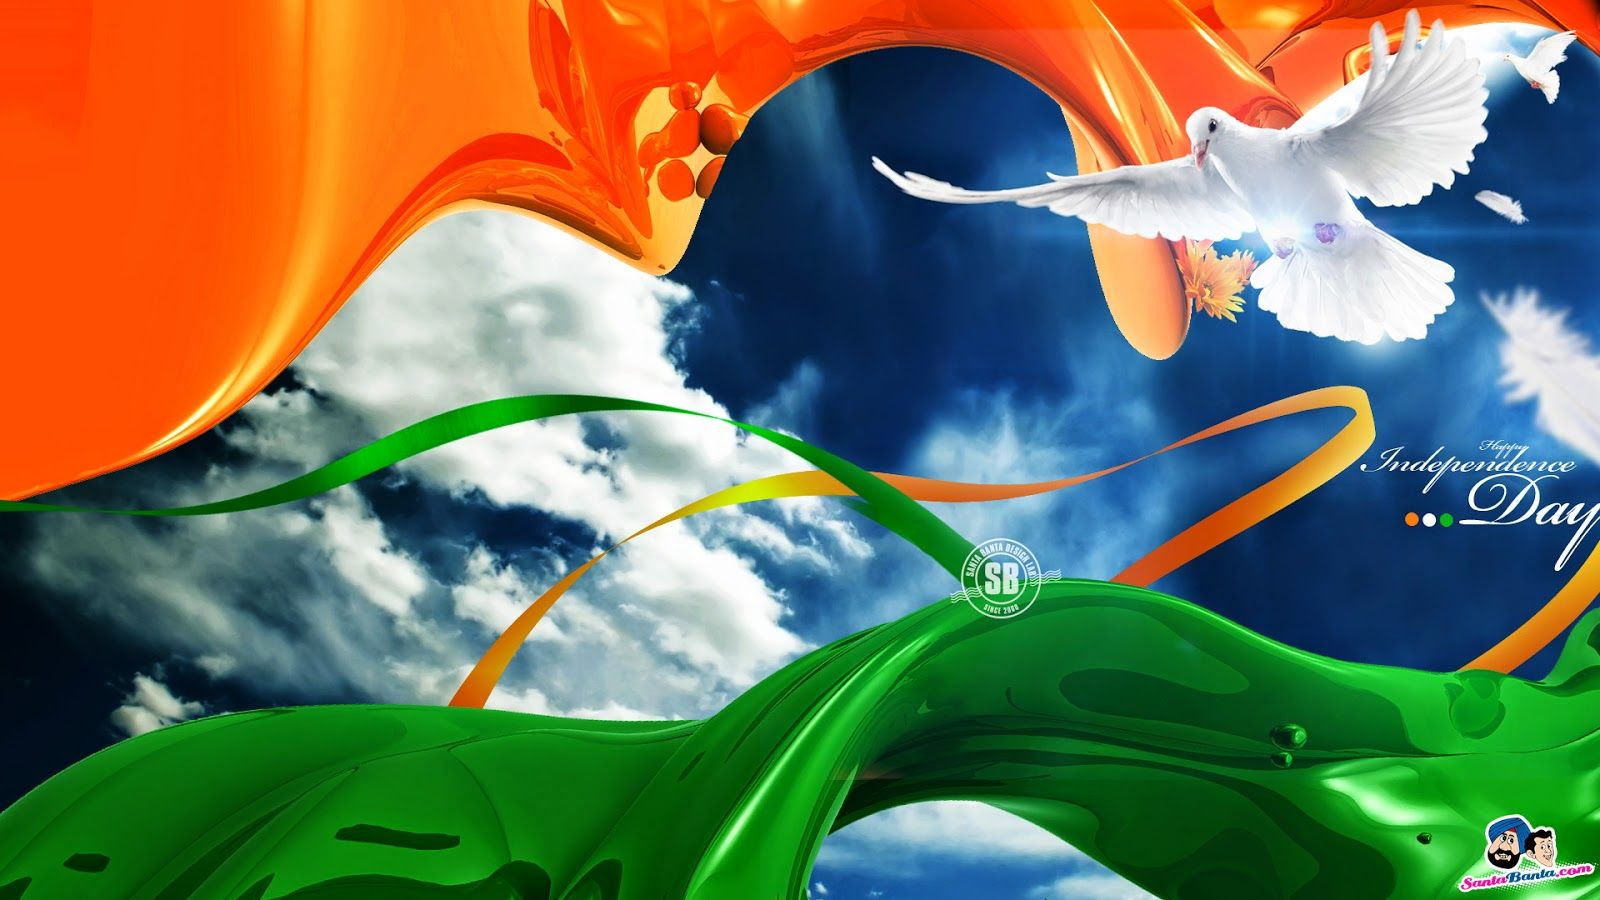 Indian Independence Day Wallpapers Indian Festivals Independence Day Wallpaper Happy Independence Day Wallpaper Independence Day Hd Wallpaper